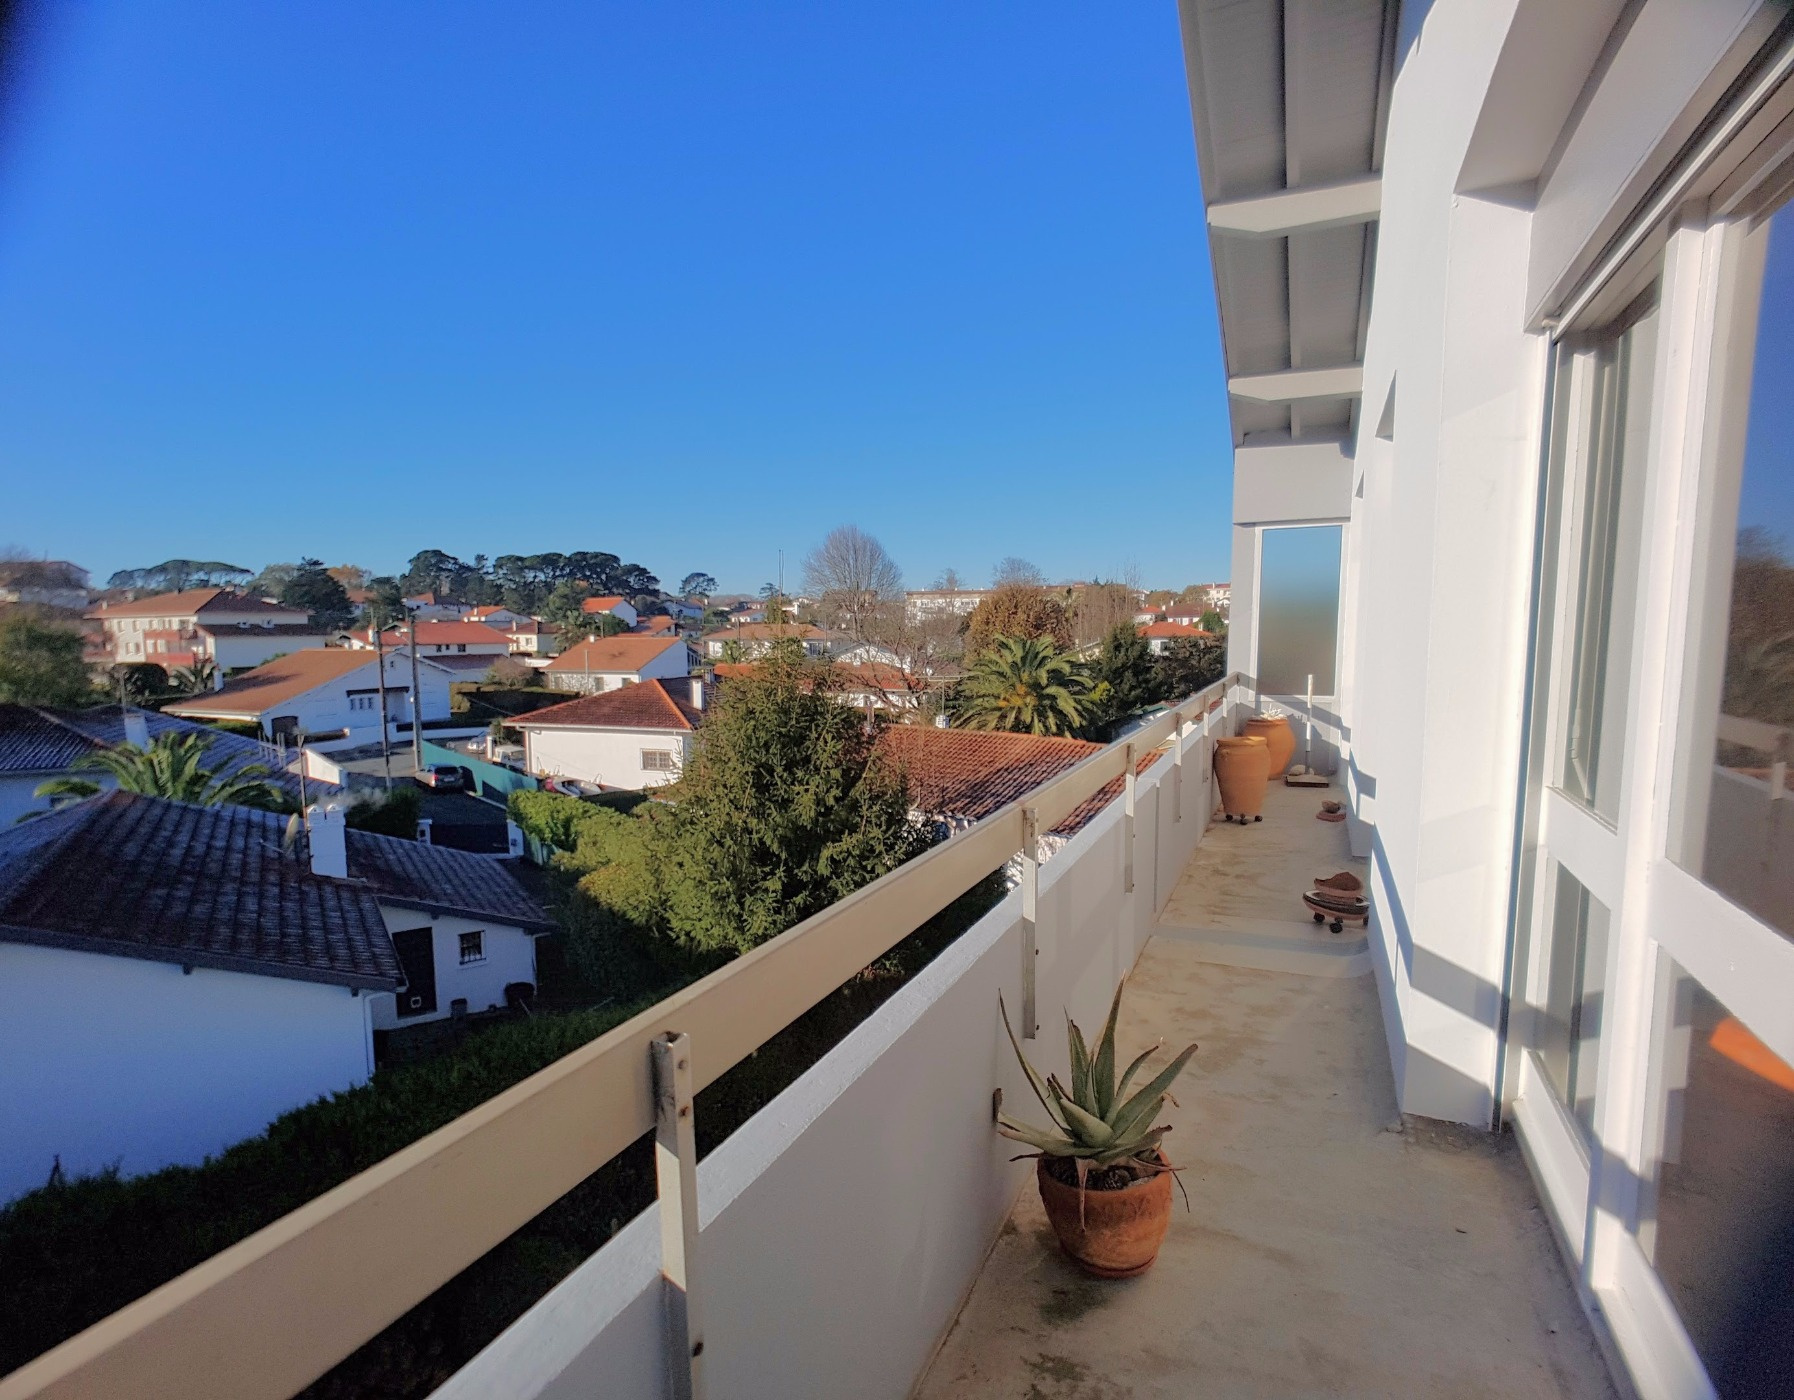 Agence immobili re chabagno immobilier anglet for Agence immobiliere 62